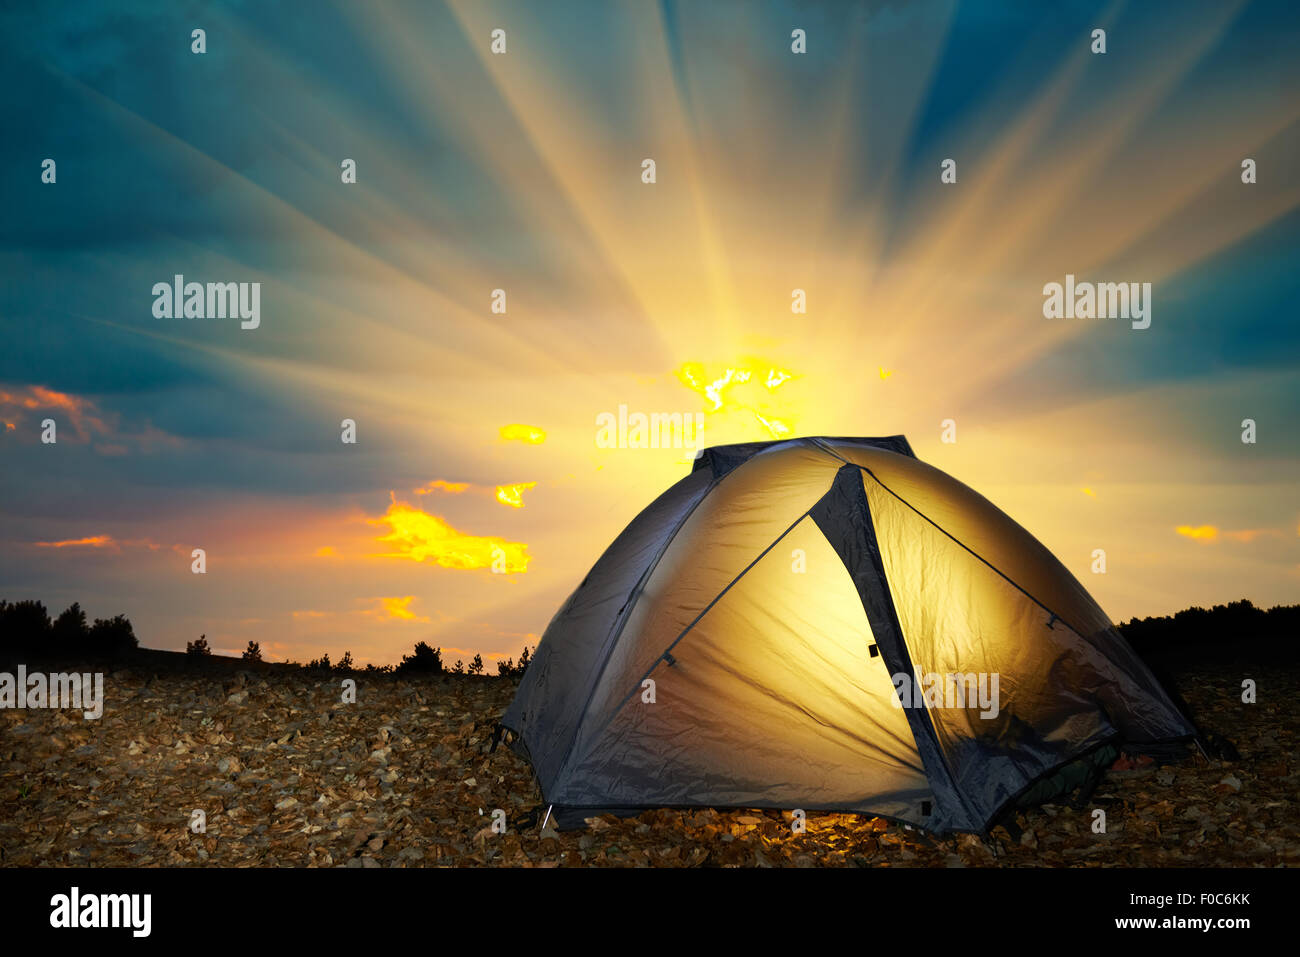 Illuminated yellow camping tent under stars at night. Instagram like filter - Stock Image